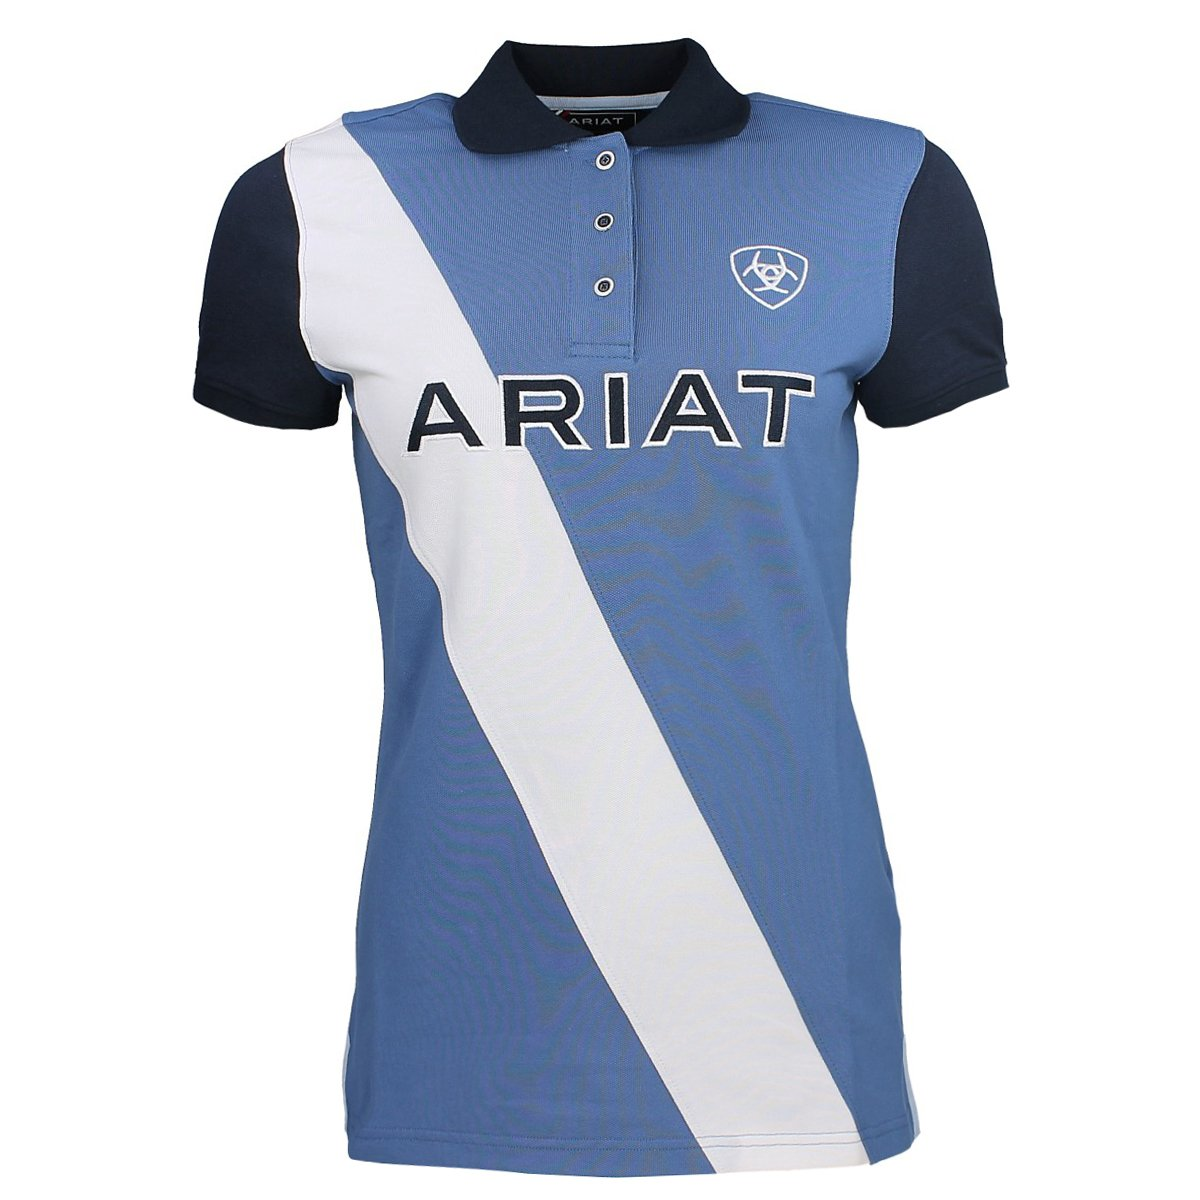 Ariat Taryn Womens Polo Shirt - Blue Saga Ariat Europe Ltd